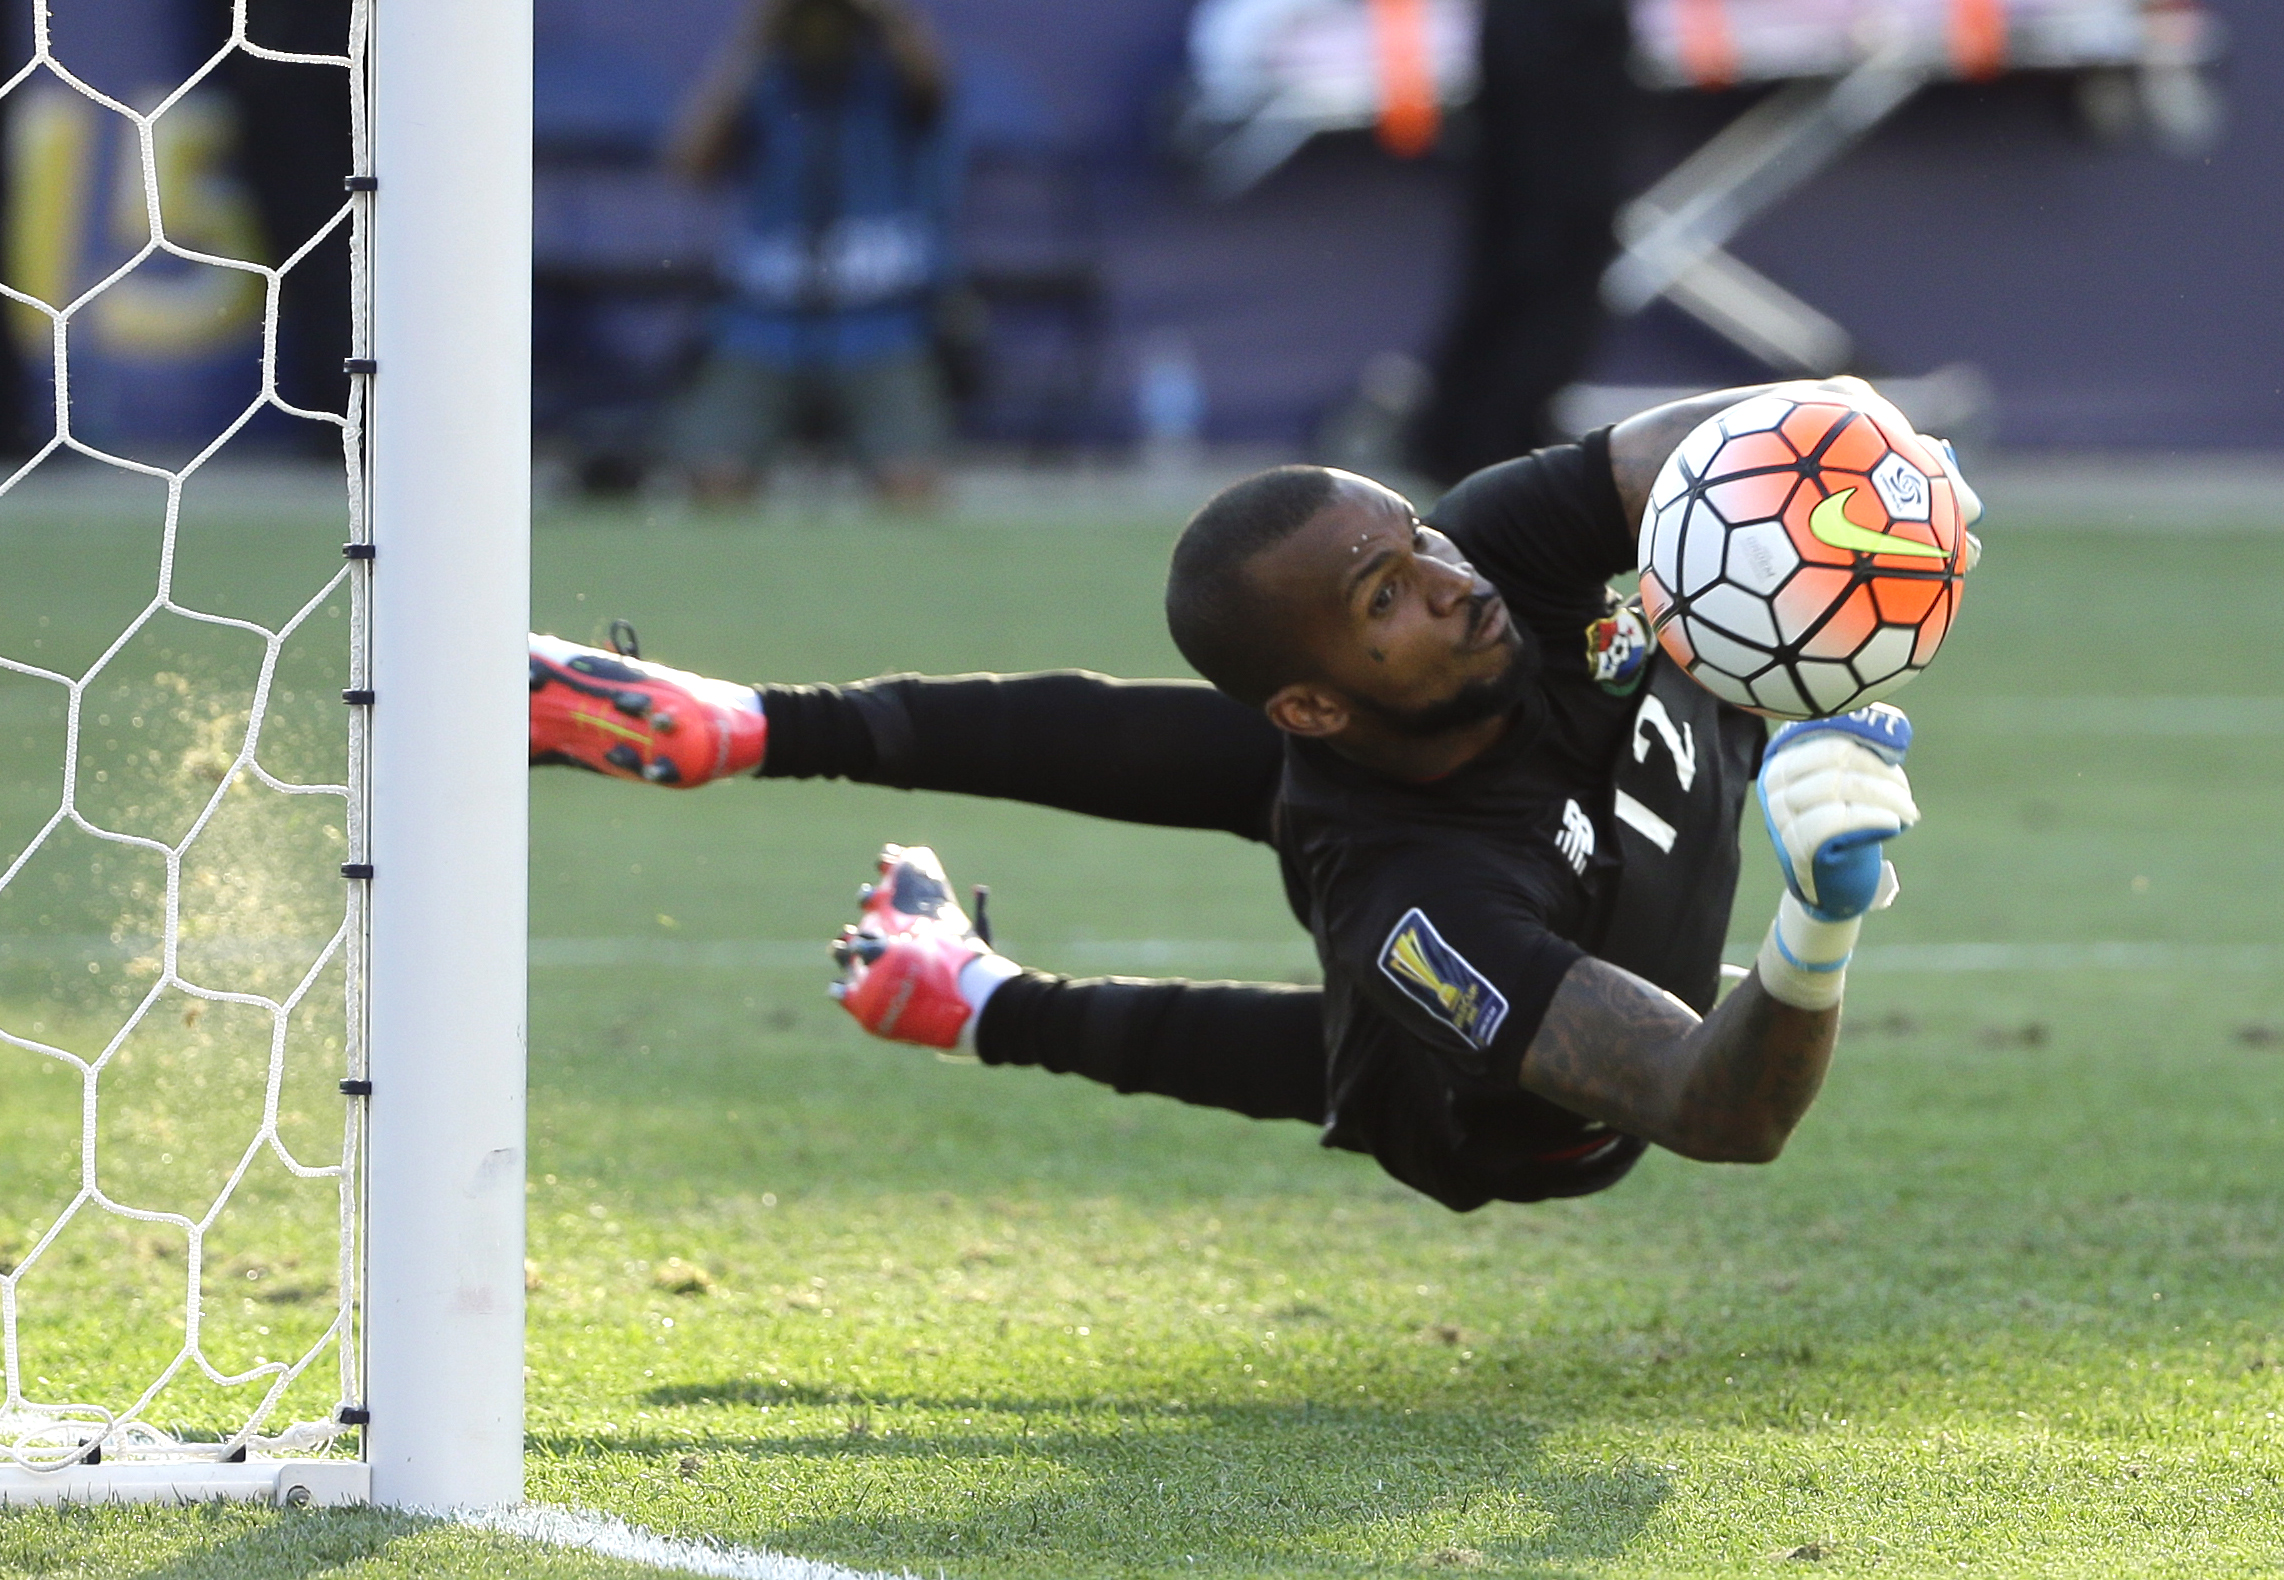 Panama's Luis Mejia blocks a kick during the penalty kick shootout in the CONCACAF Gold Cup third place soccer match, Saturday, July 25, 2015, in Chester, Pa. Photo: AP